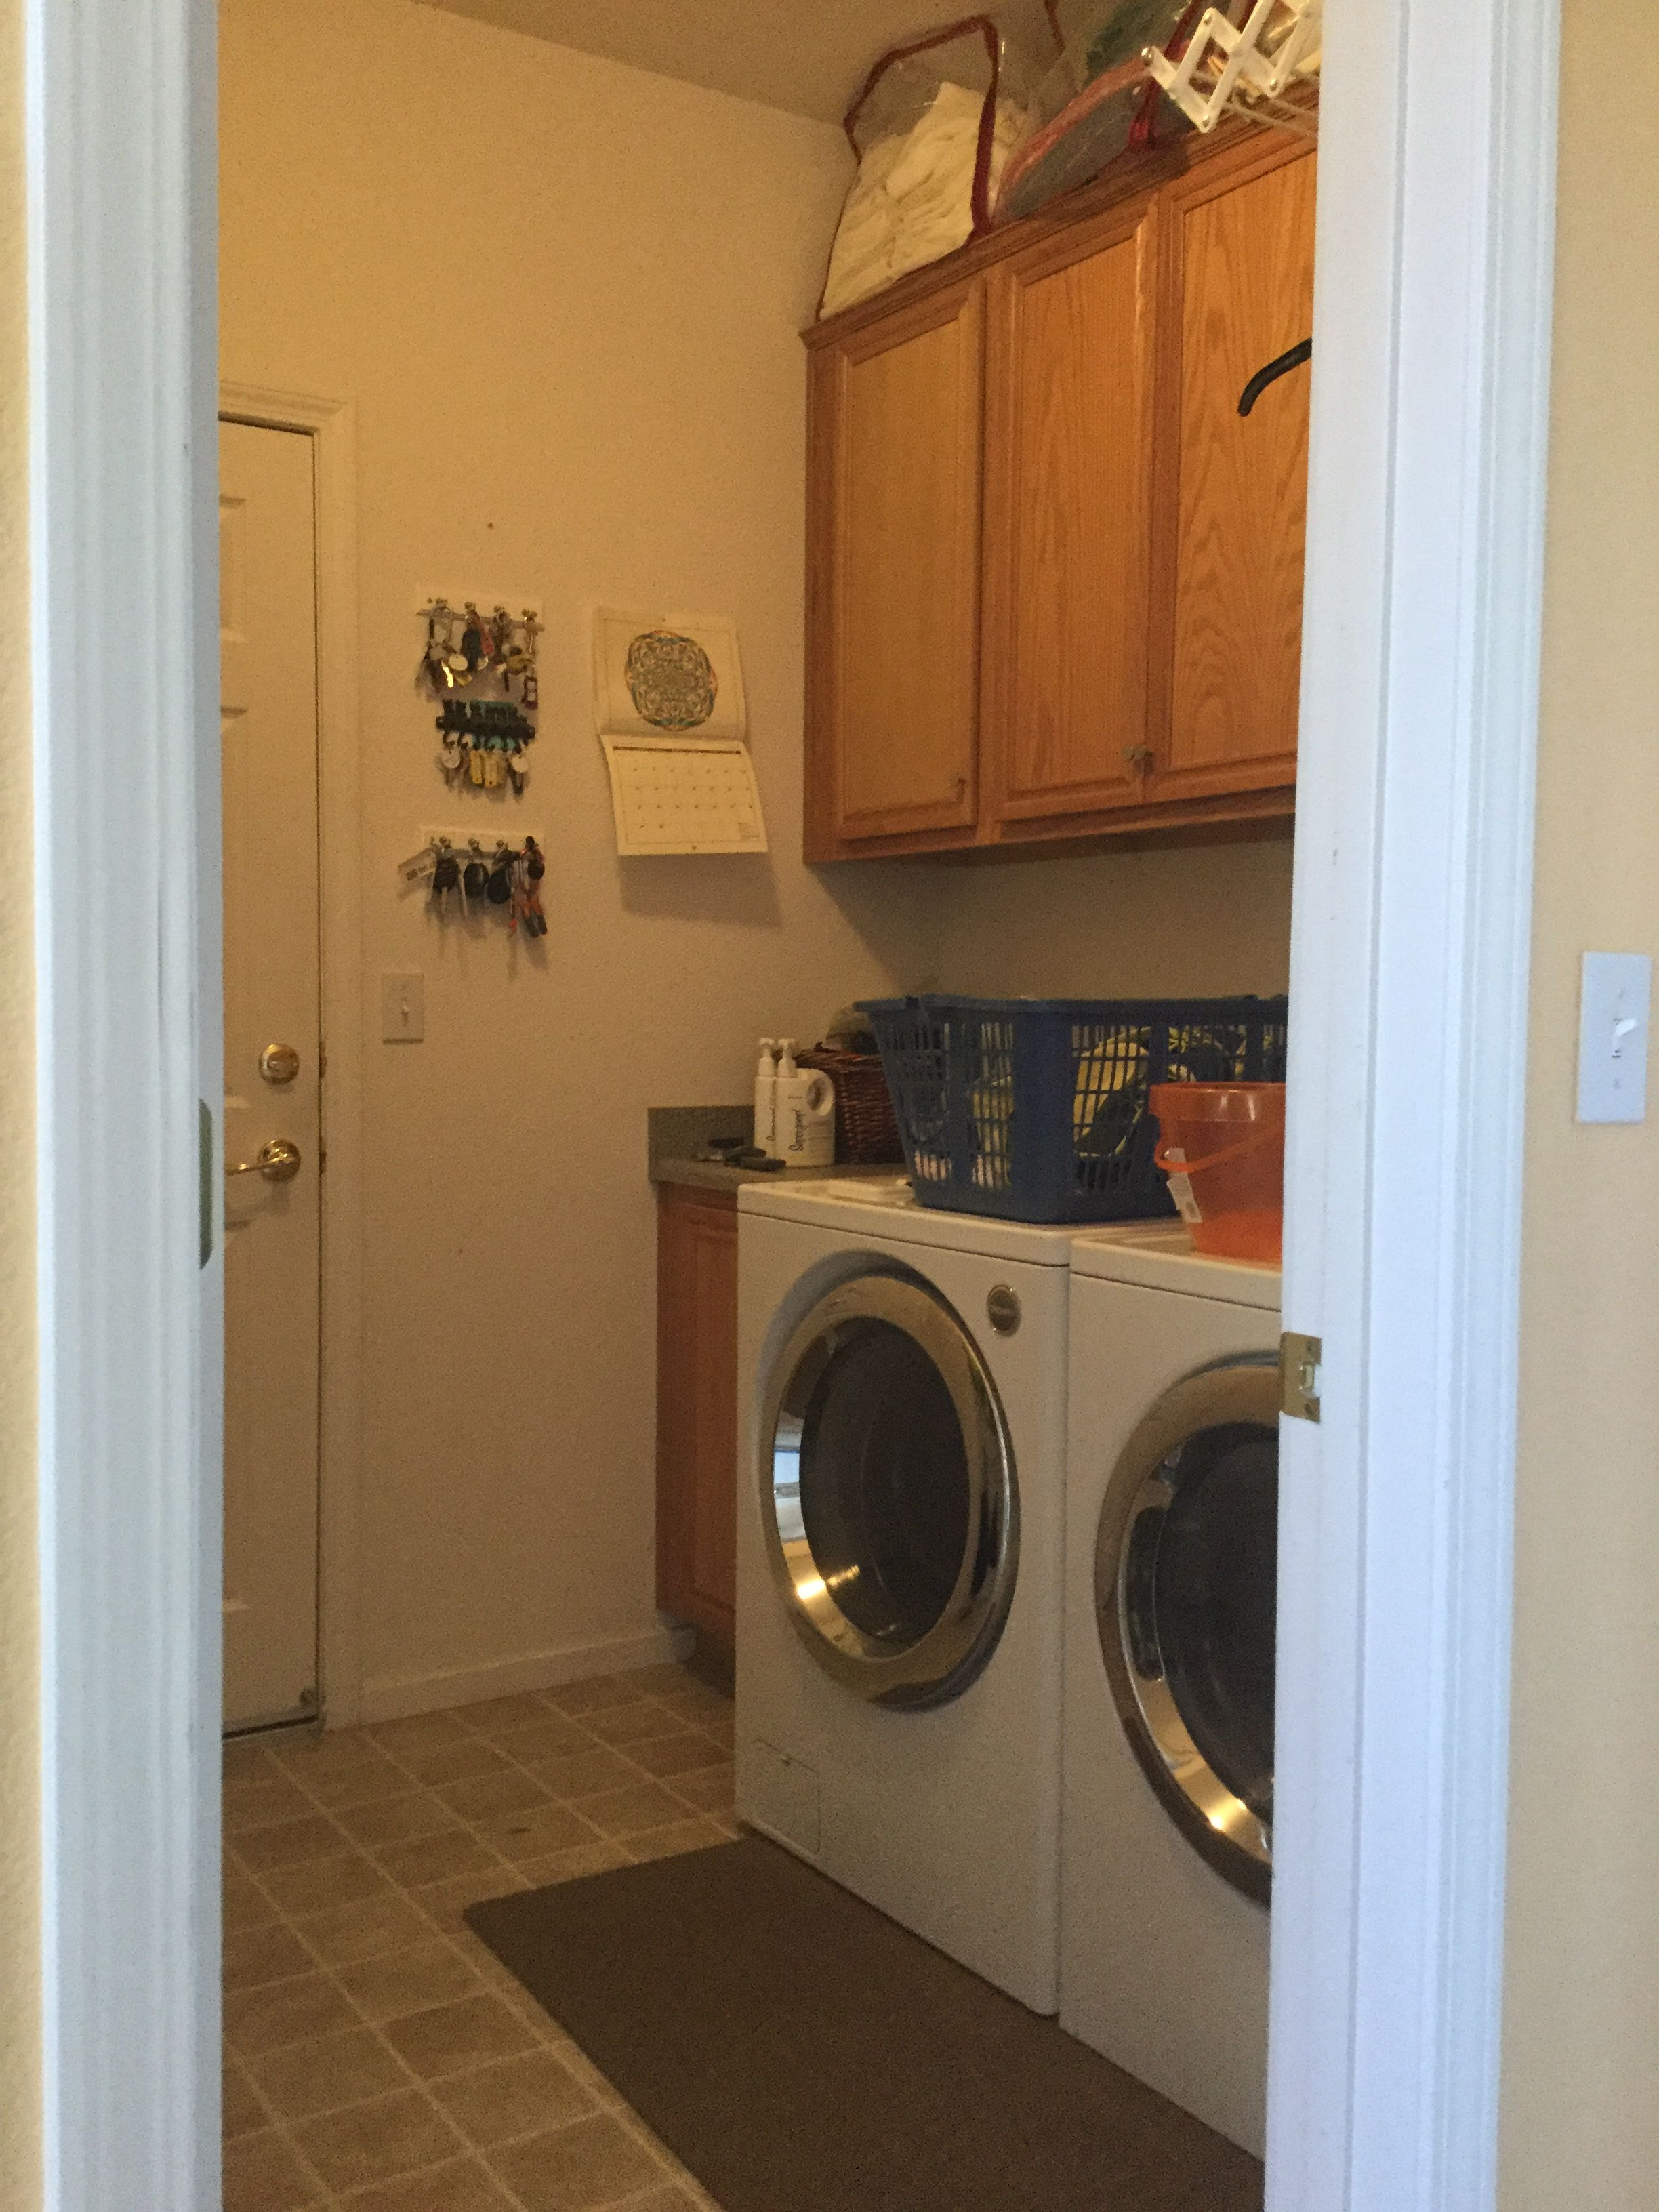 Before Home appliances, Washer and dryer, Stacked washer